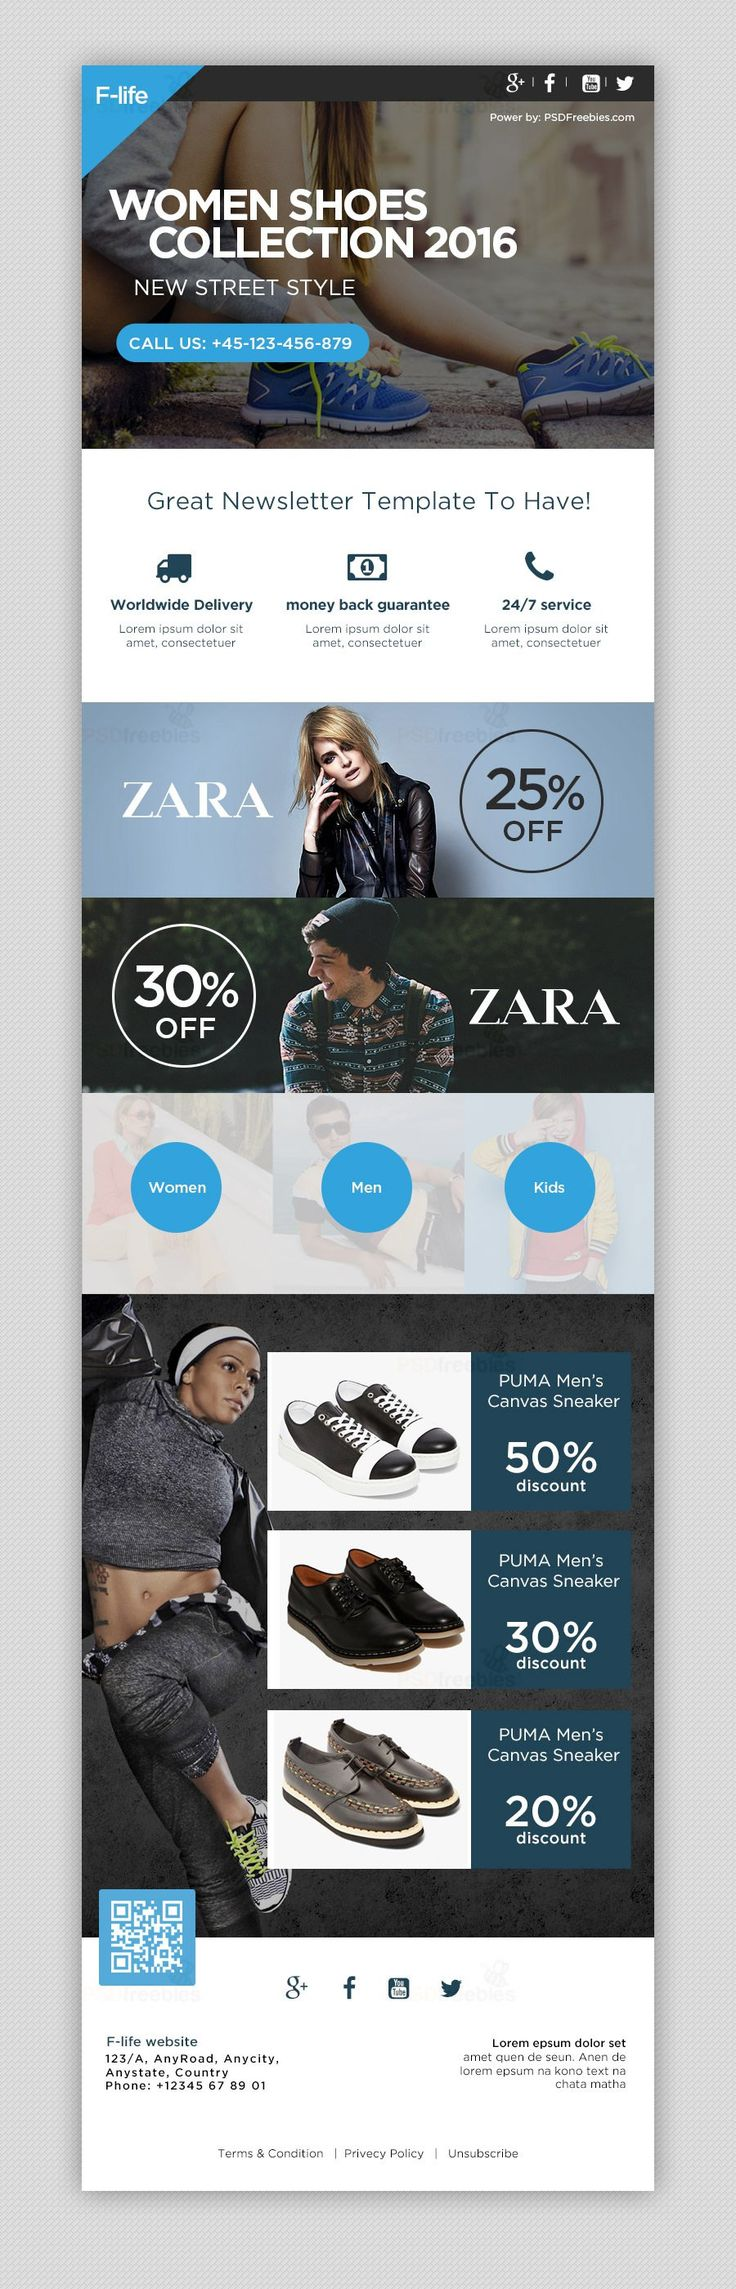 The 211 best Email Marketing | Templates images on Pinterest ...